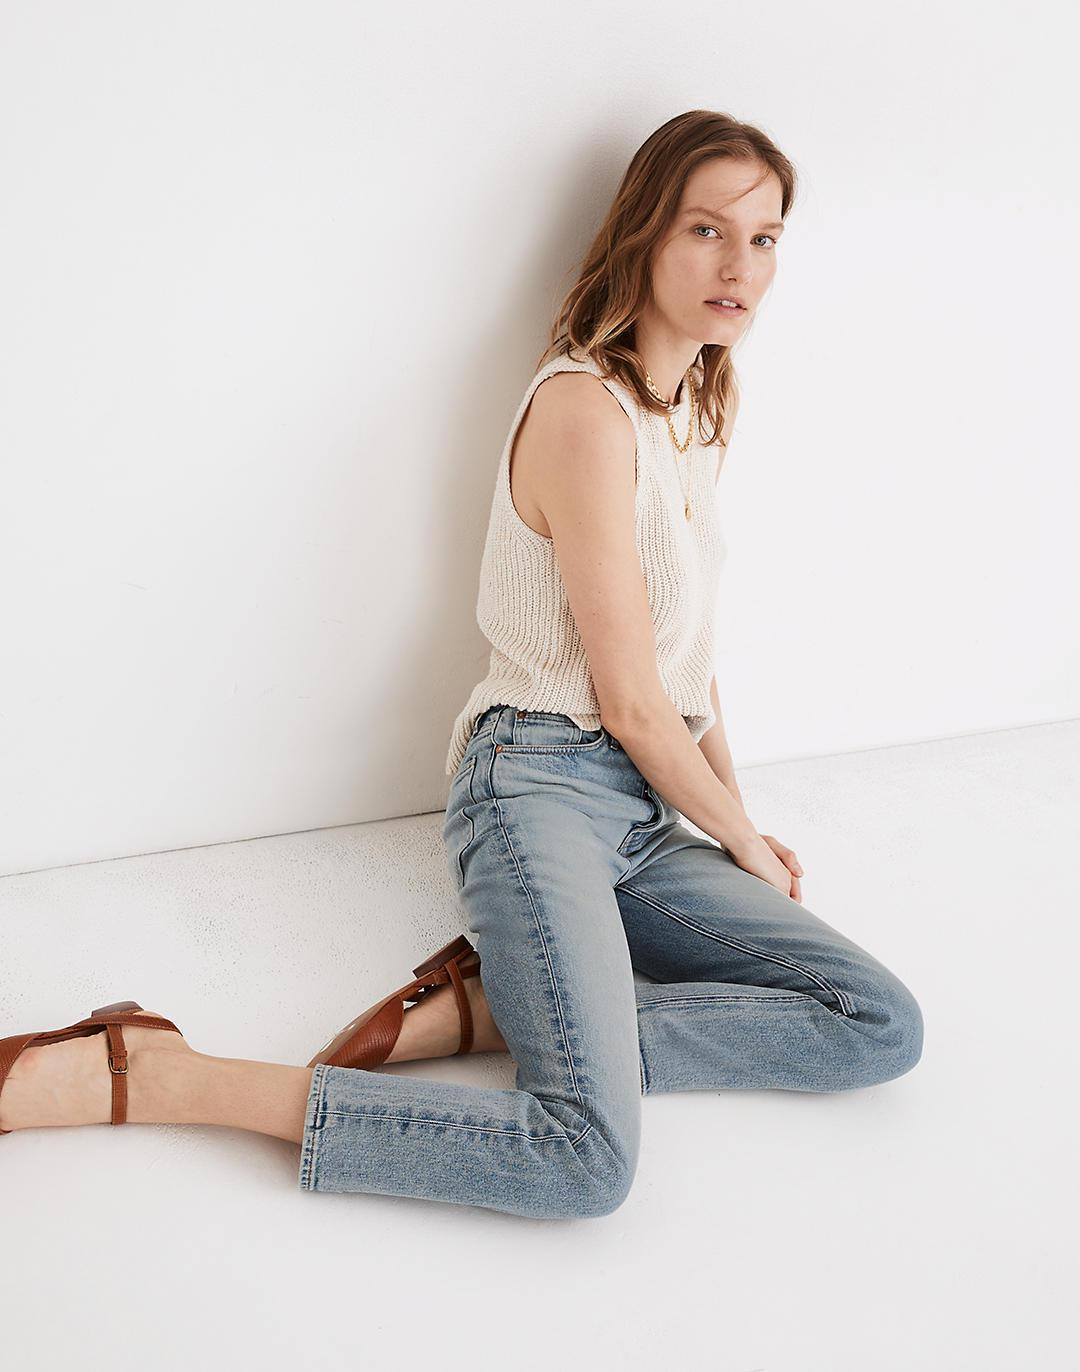 Rivet & Thread Perfect Vintage Jeans in Ryerson Wash 1